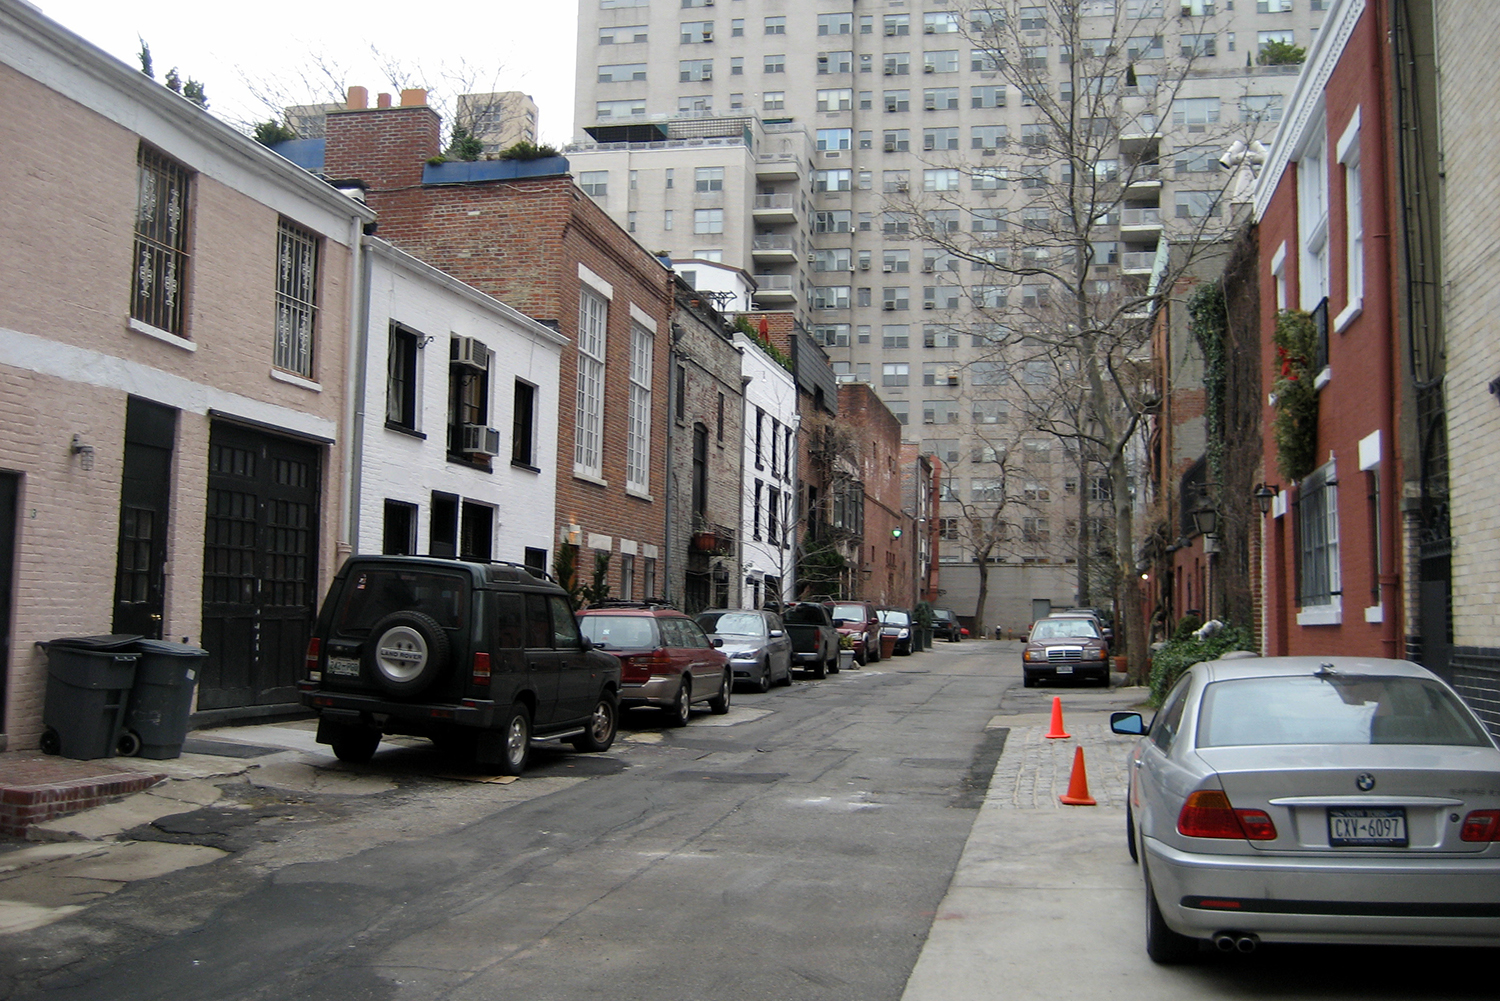 "MacDougal Alley. Photo by <a href=""https://www.flickr.com/photos/wallyg/371361456/in/photolist-yPjPJ-5SuoKC-3eXHg7-eqERU-5vXotU-cpWA3J-6as2vk"">Wally Gobetz/Flickr</a>."